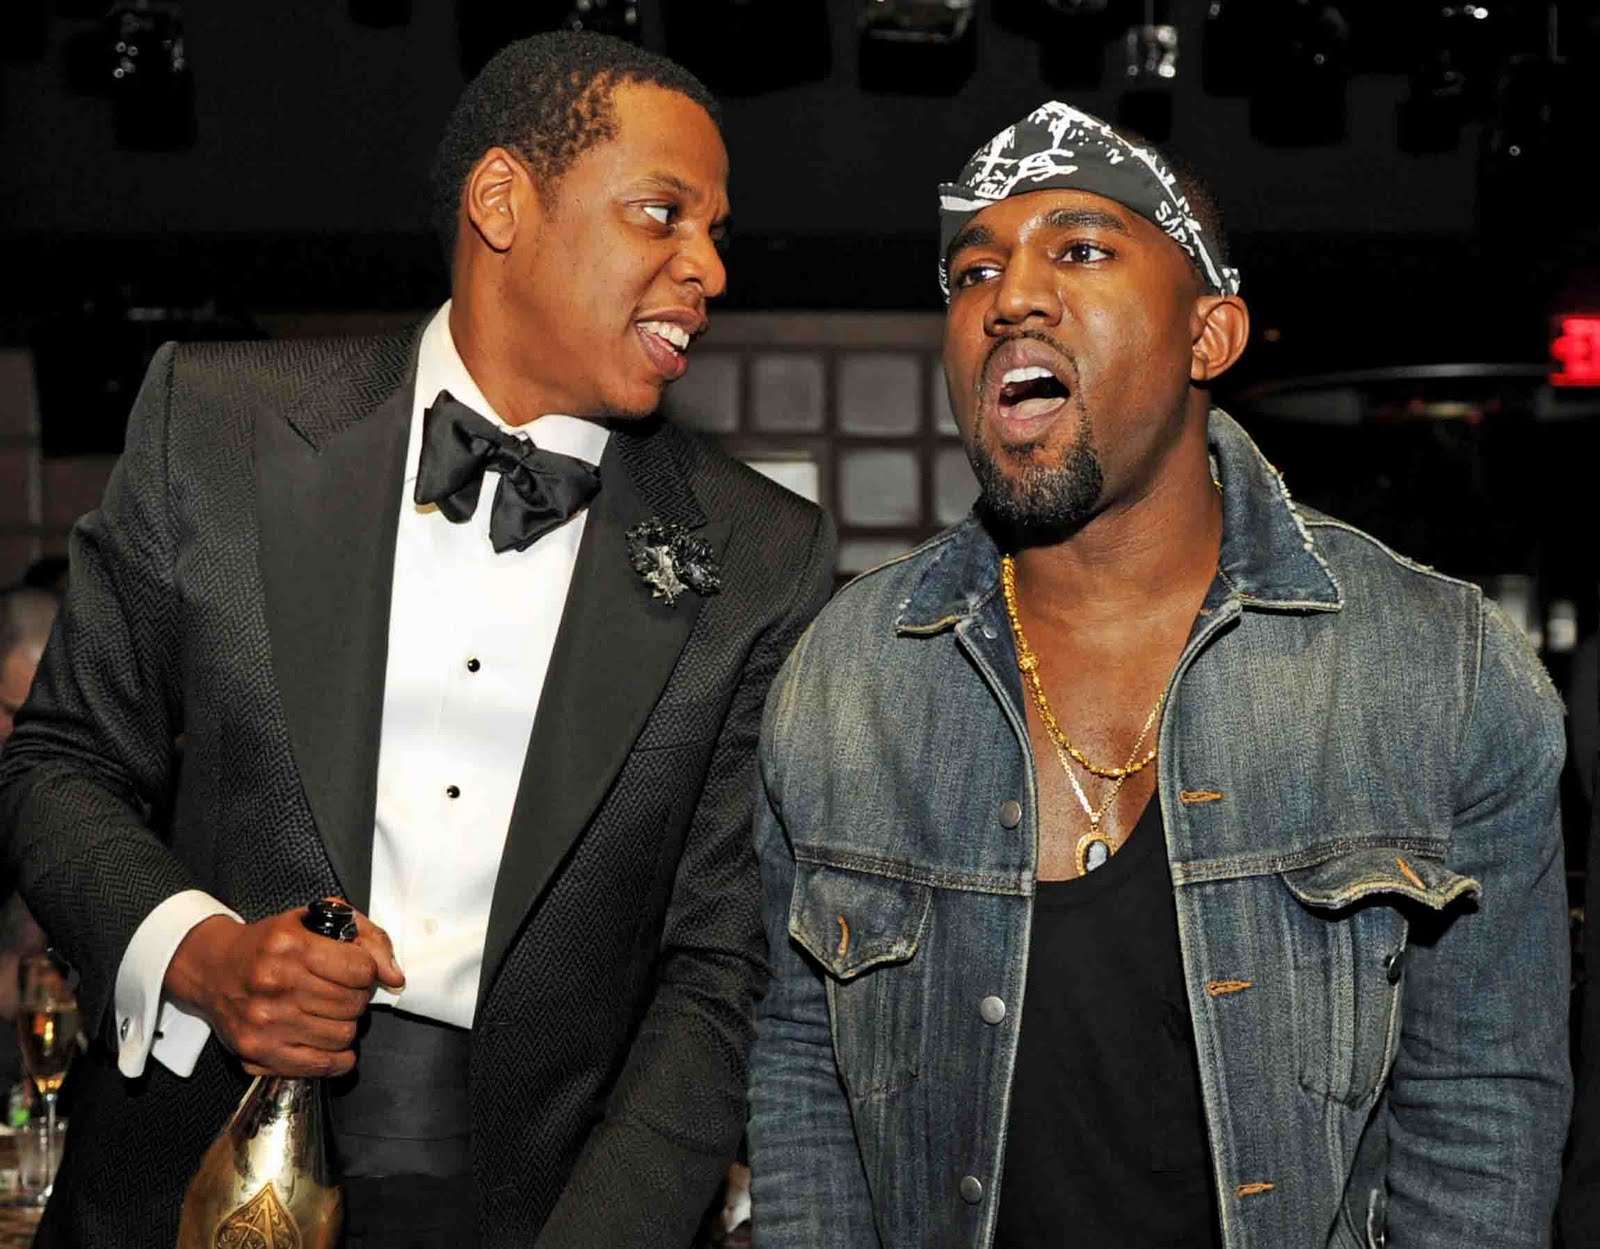 Kanye West, Frank Ocean & JAY Z Won The 'Made in America' Lawsuit 1385580220 7a392f0d842ec1a08e80021b35f1ac3c